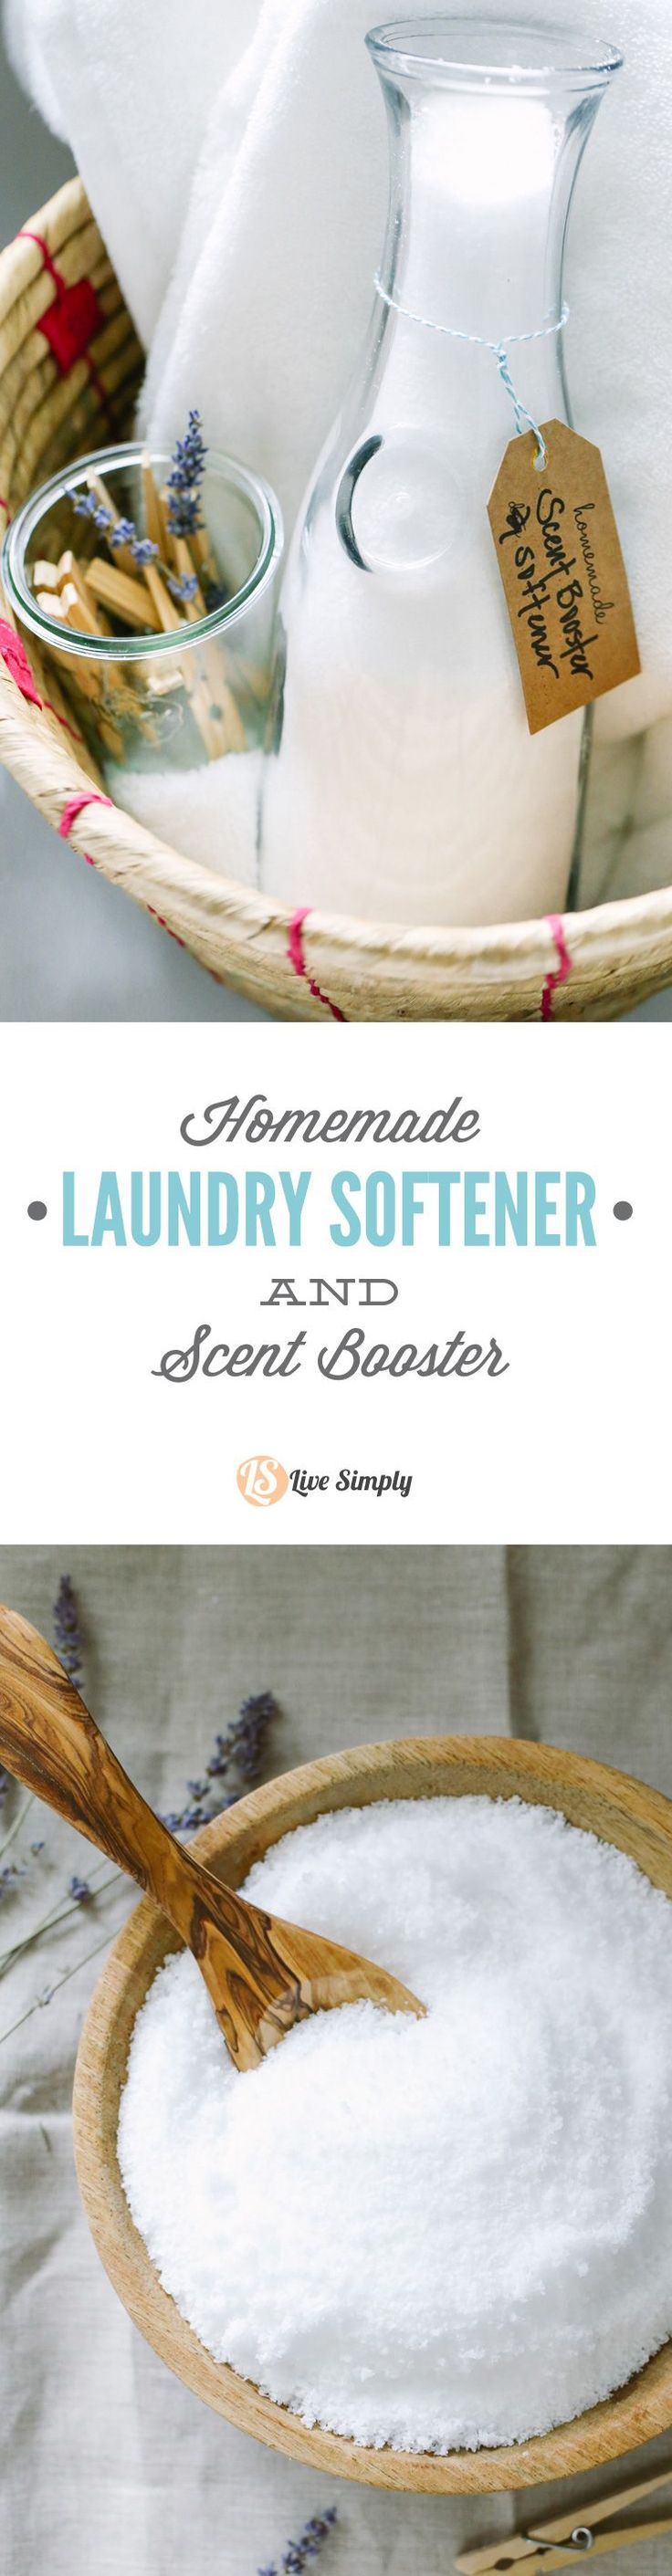 A two-ingredient, homemade fabric softener and scent booster. This stuff is super cheap to make and completely natural.  http://livesimply.me/2015/10/21/homemade-laundry-softener-and-scent-booster/ 450 designer and niche perfumes/colognes to choose from! <Visit>